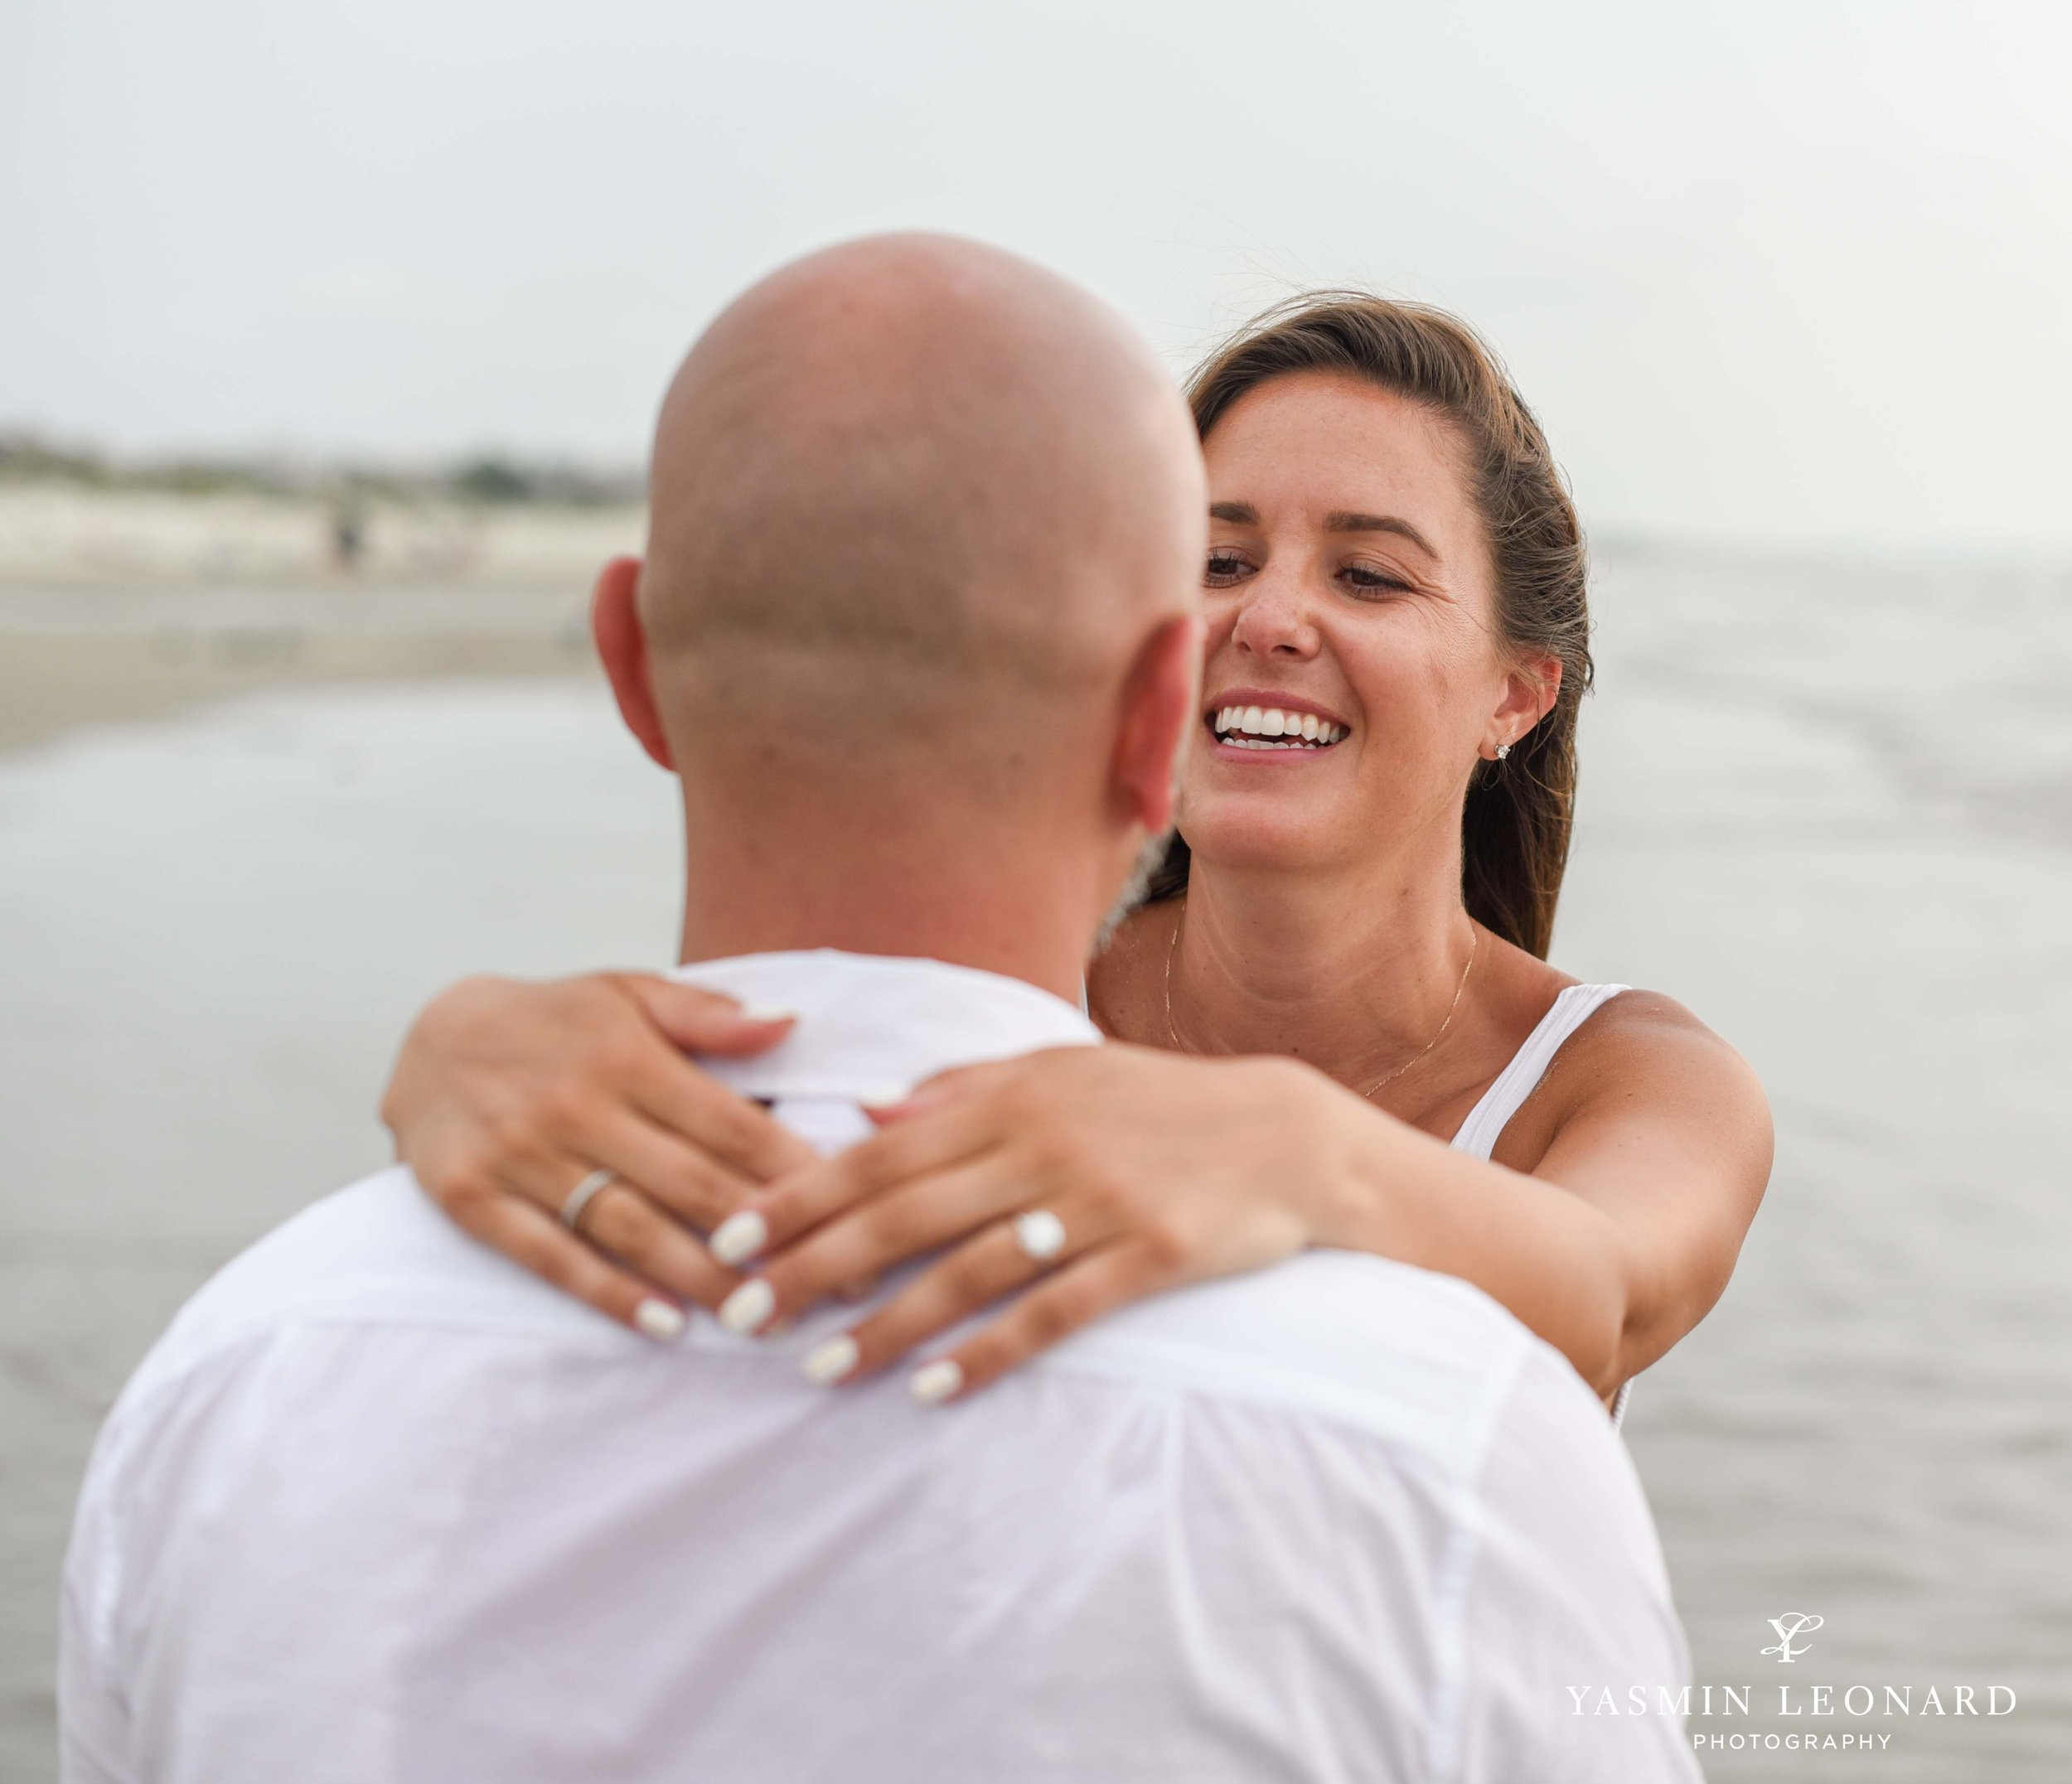 Beach Proposal - Beach Engagement Kiawah Island Photographer - NC Beach Photographer - How He Asked - NC Photographer - Proposal Ideas - Engagement Ring - Yasmin Leonard Photography-13.jpg